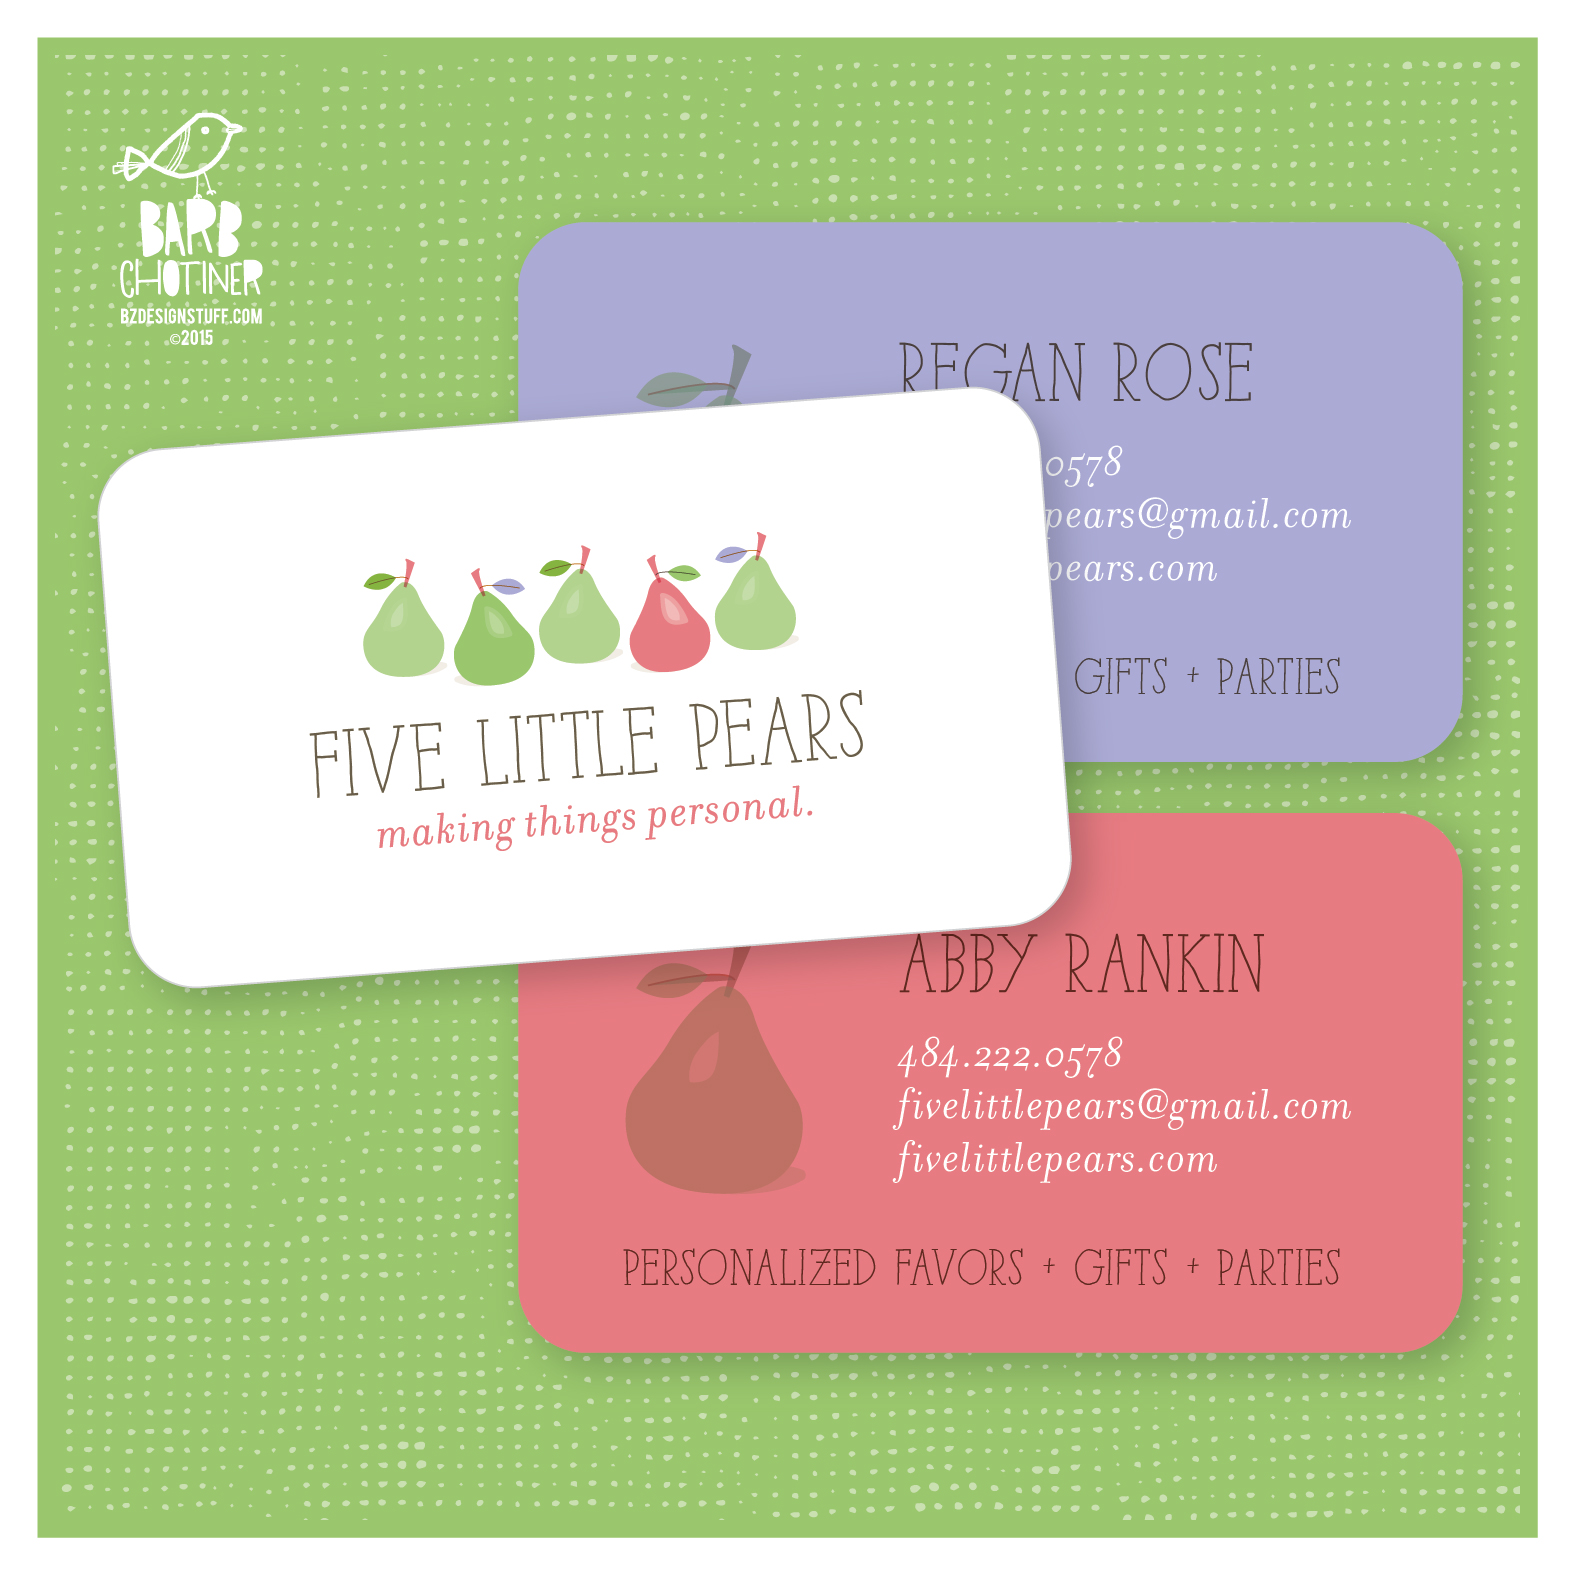 Copy of Branding for Five Little Pears